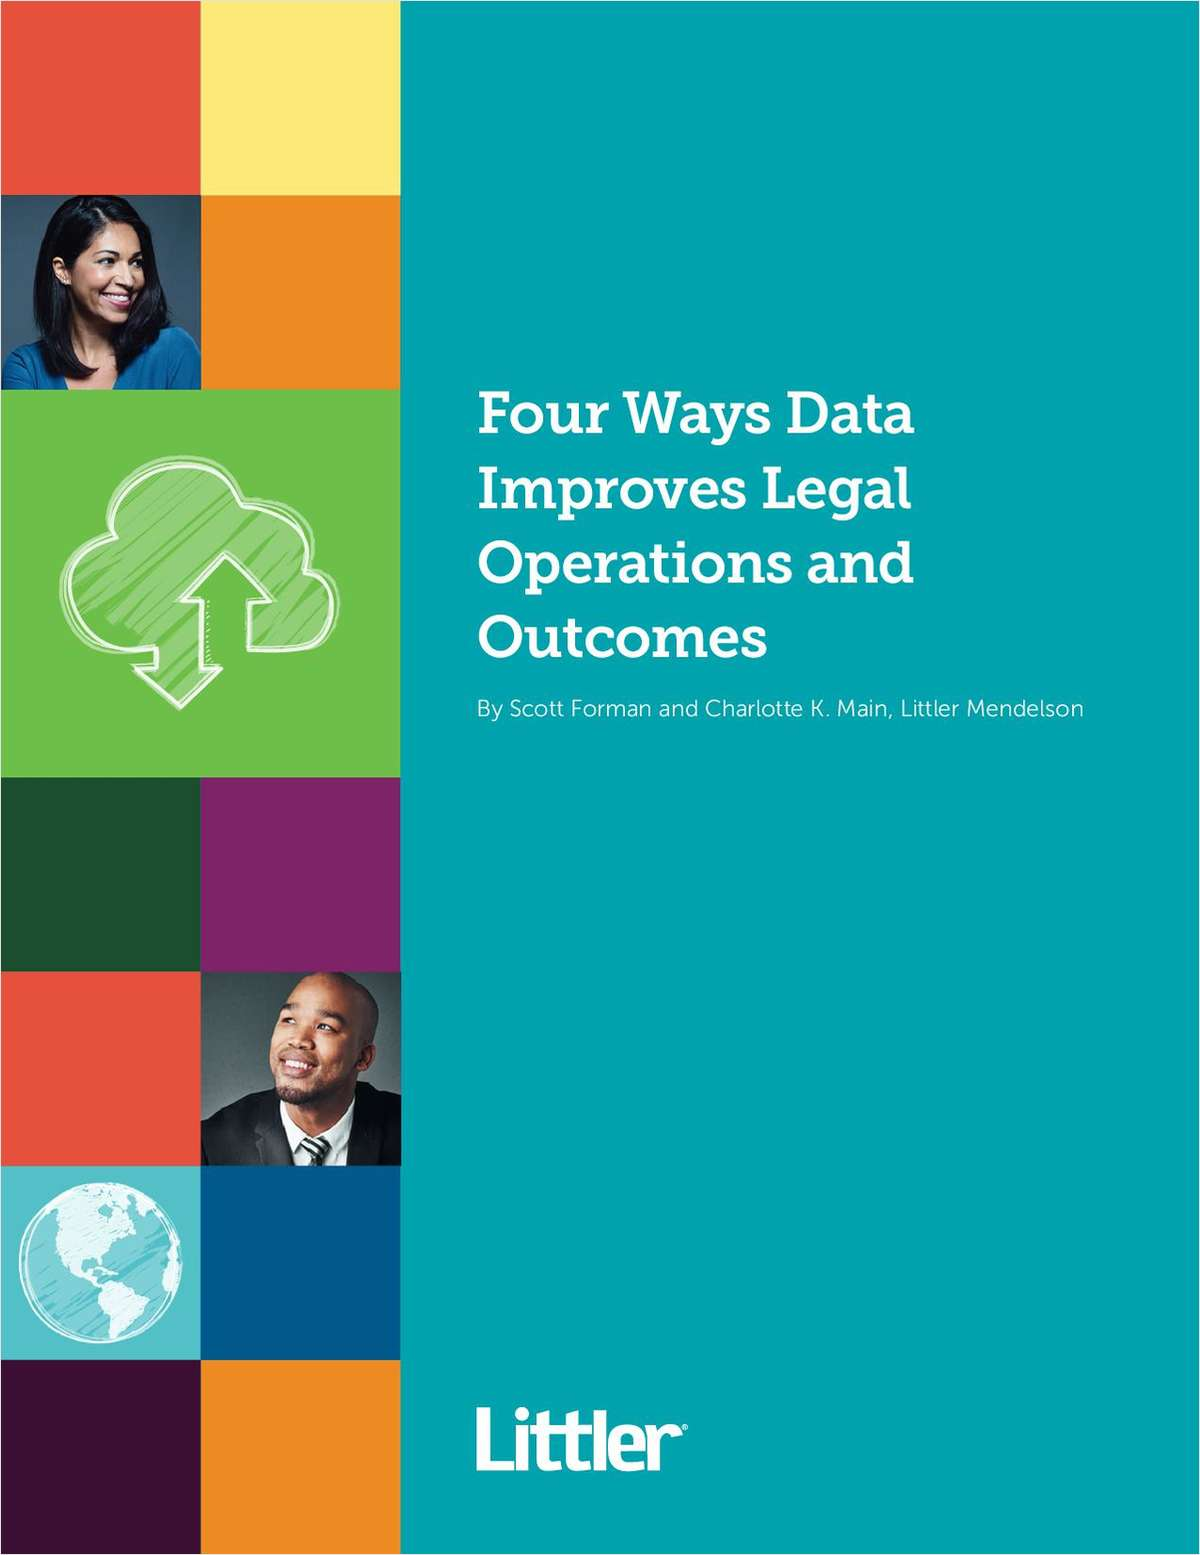 4 Ways Data Improves Legal Operations and Outcomes